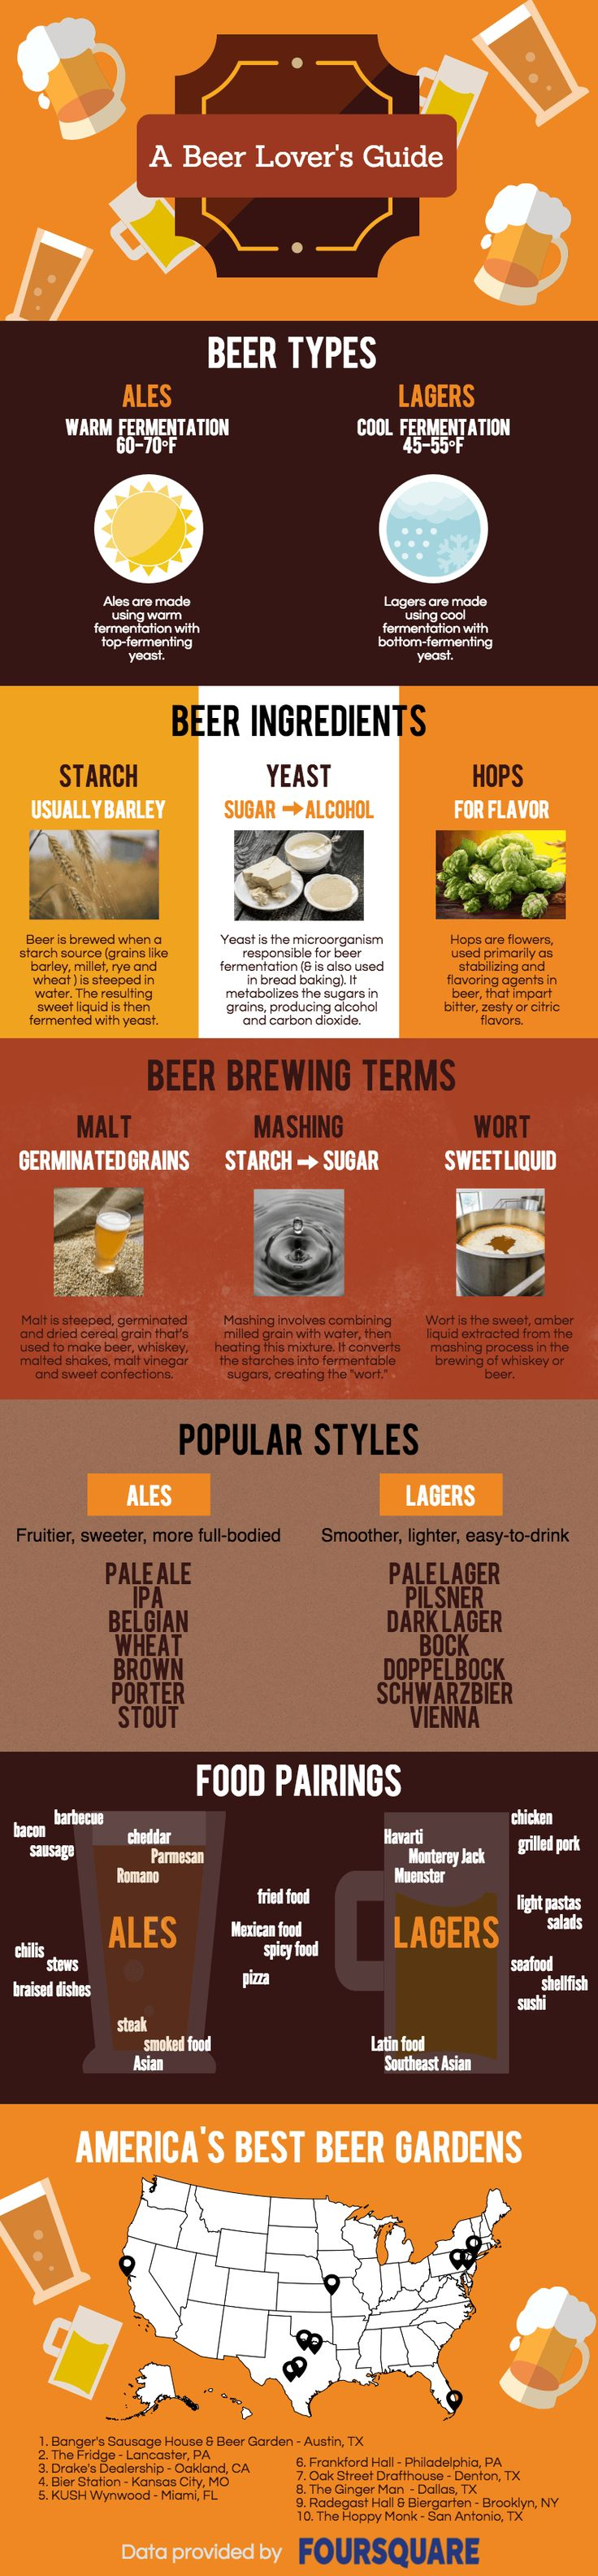 What's America's favorite alcoholic beverage? Beer, of course! If you're like us, you already know that an ice cold, thirst-quenching brew can really hit the spot. But what is beer exactly? Check out the infographic below for everything you ever wanted to know about beers, including the two main types, brewing terms, popular styles and the best foods to enjoy them with. #Beer #beernews #beereducation